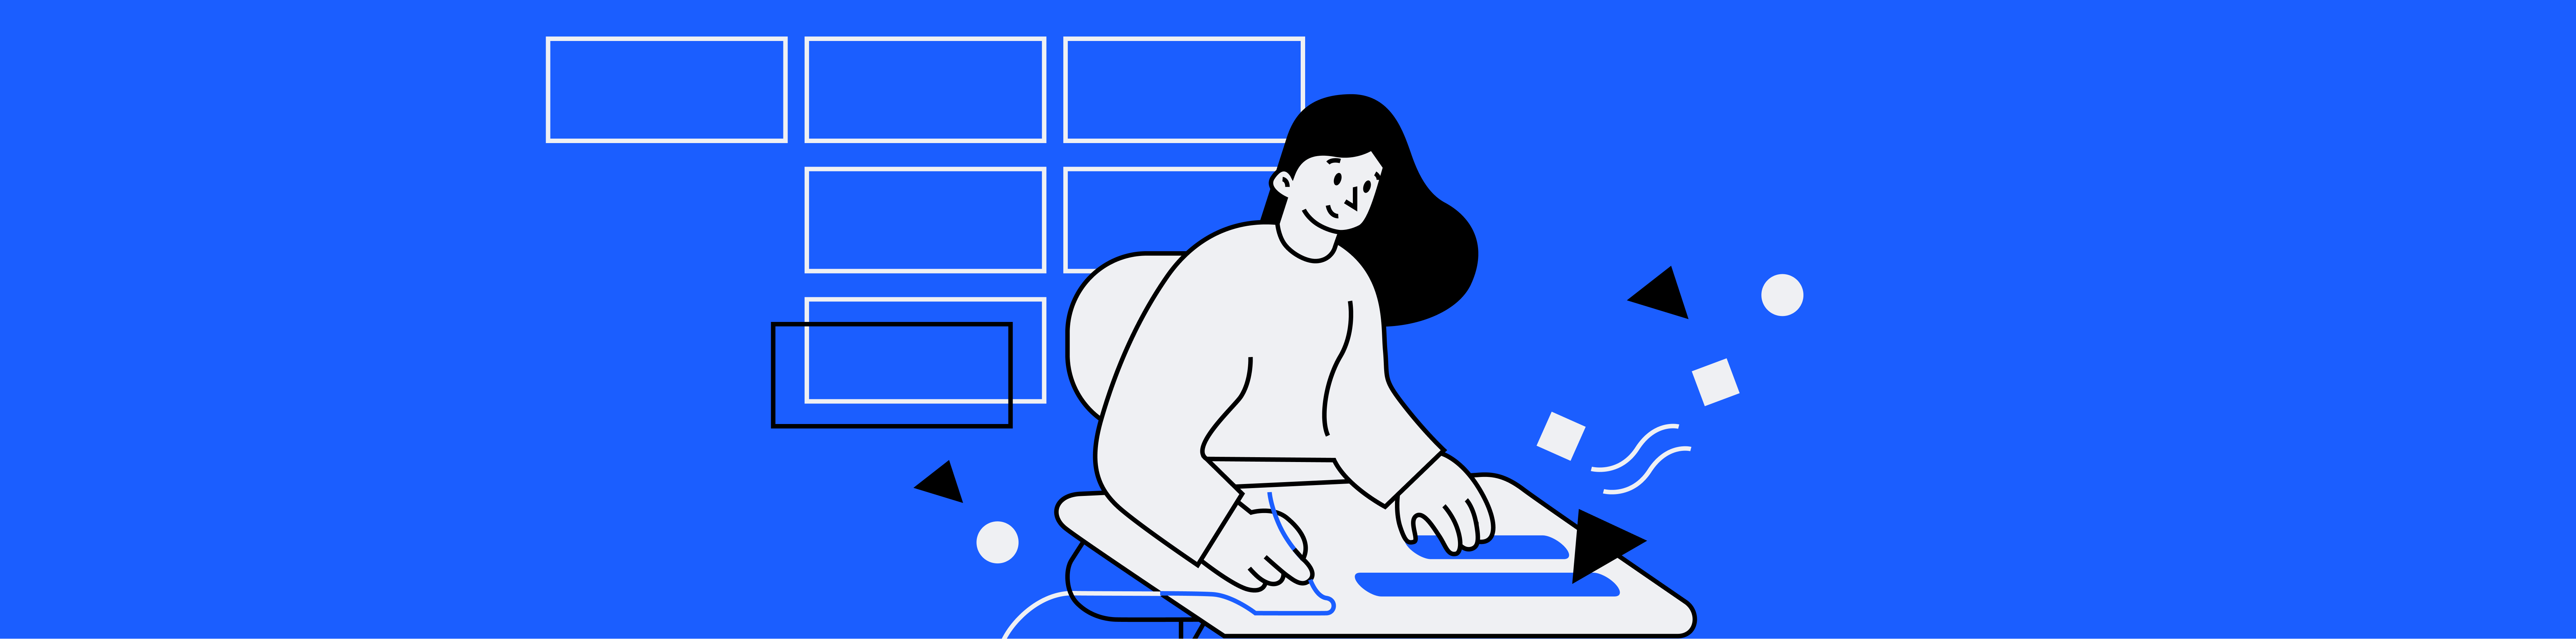 Woman sitting at a desk while writing, with abstract project management elements surrounding her